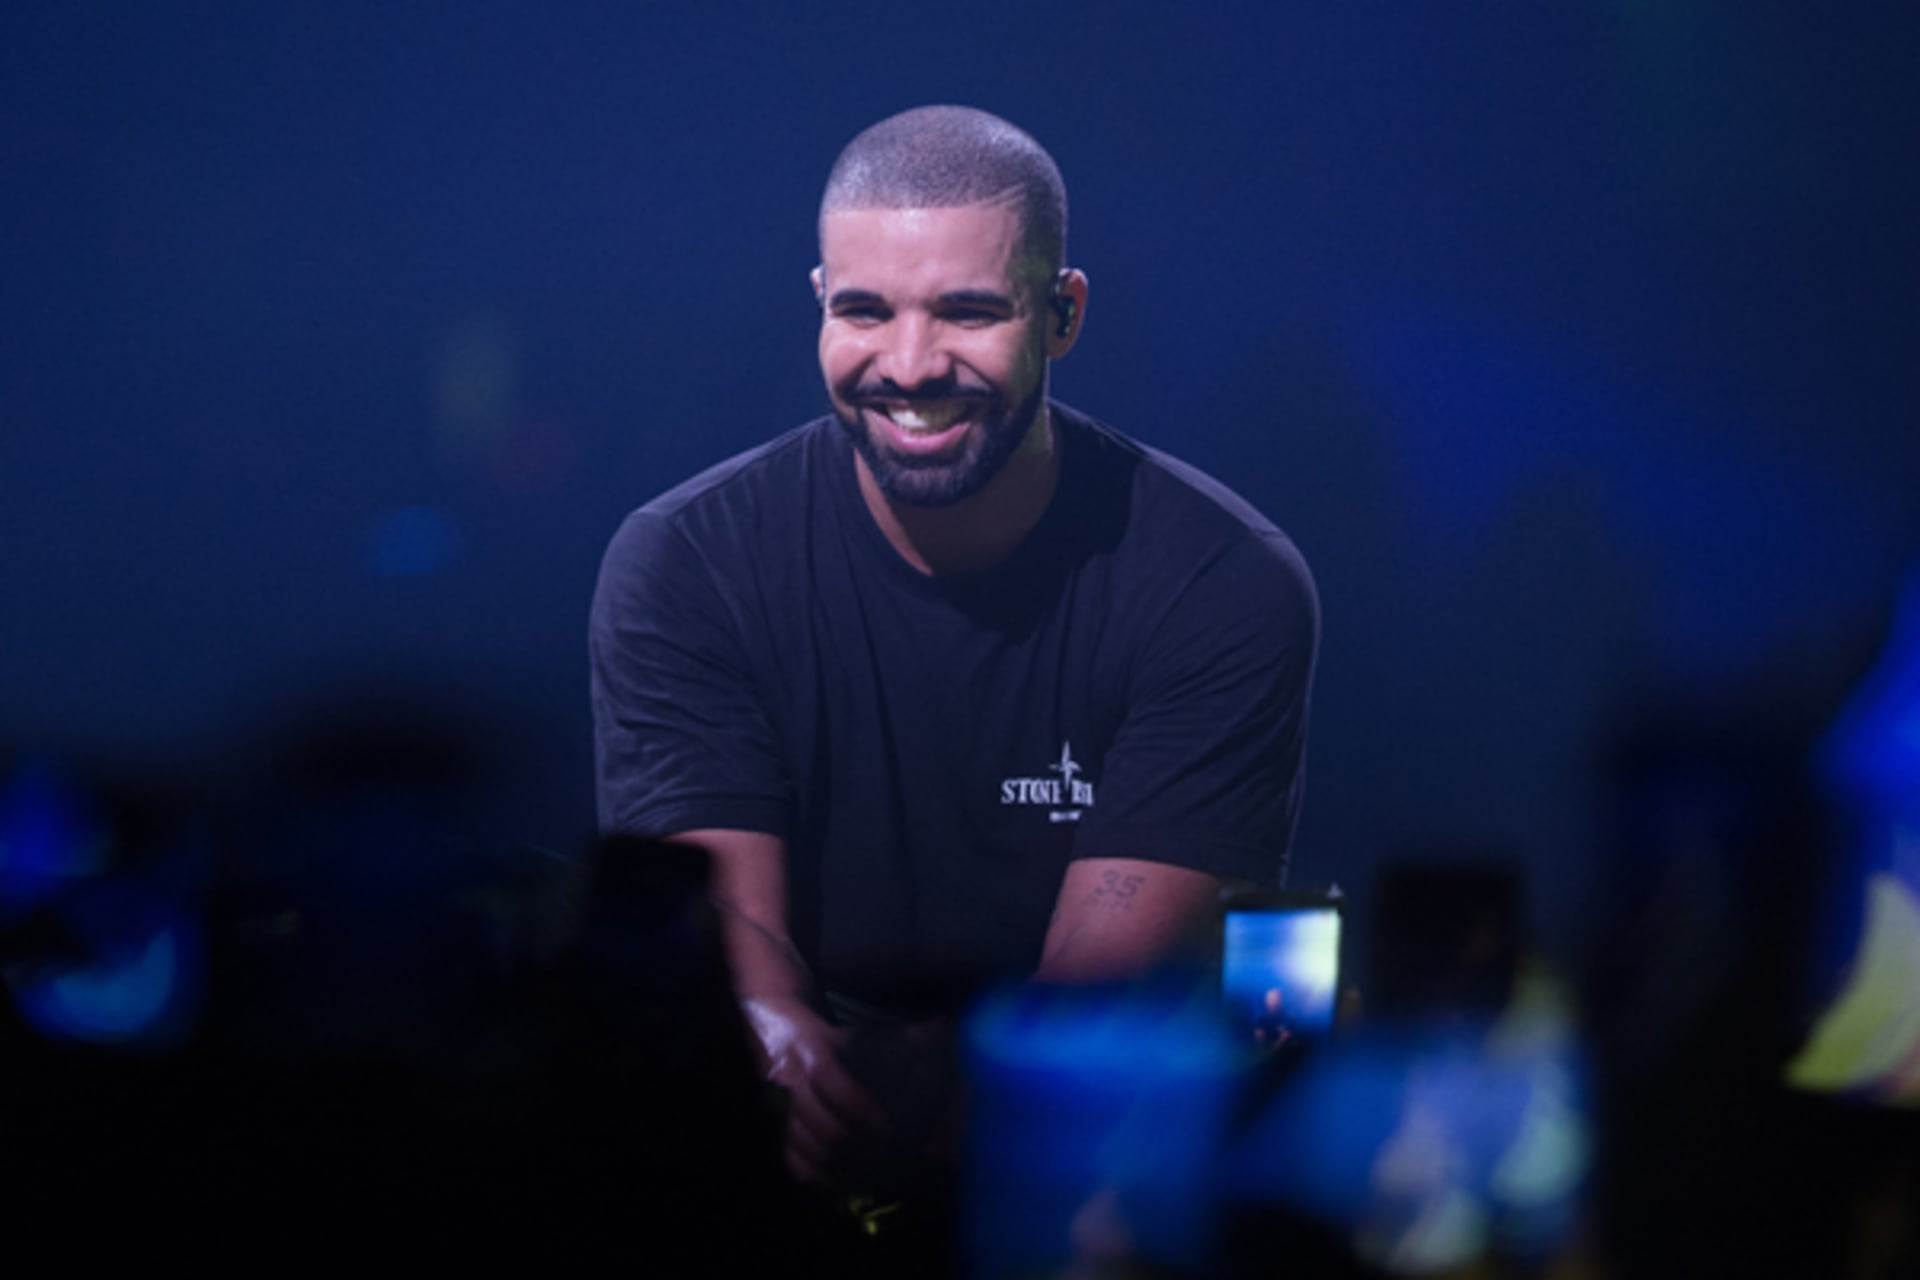 Video of Drake kissing and groping underage girl has surfaced